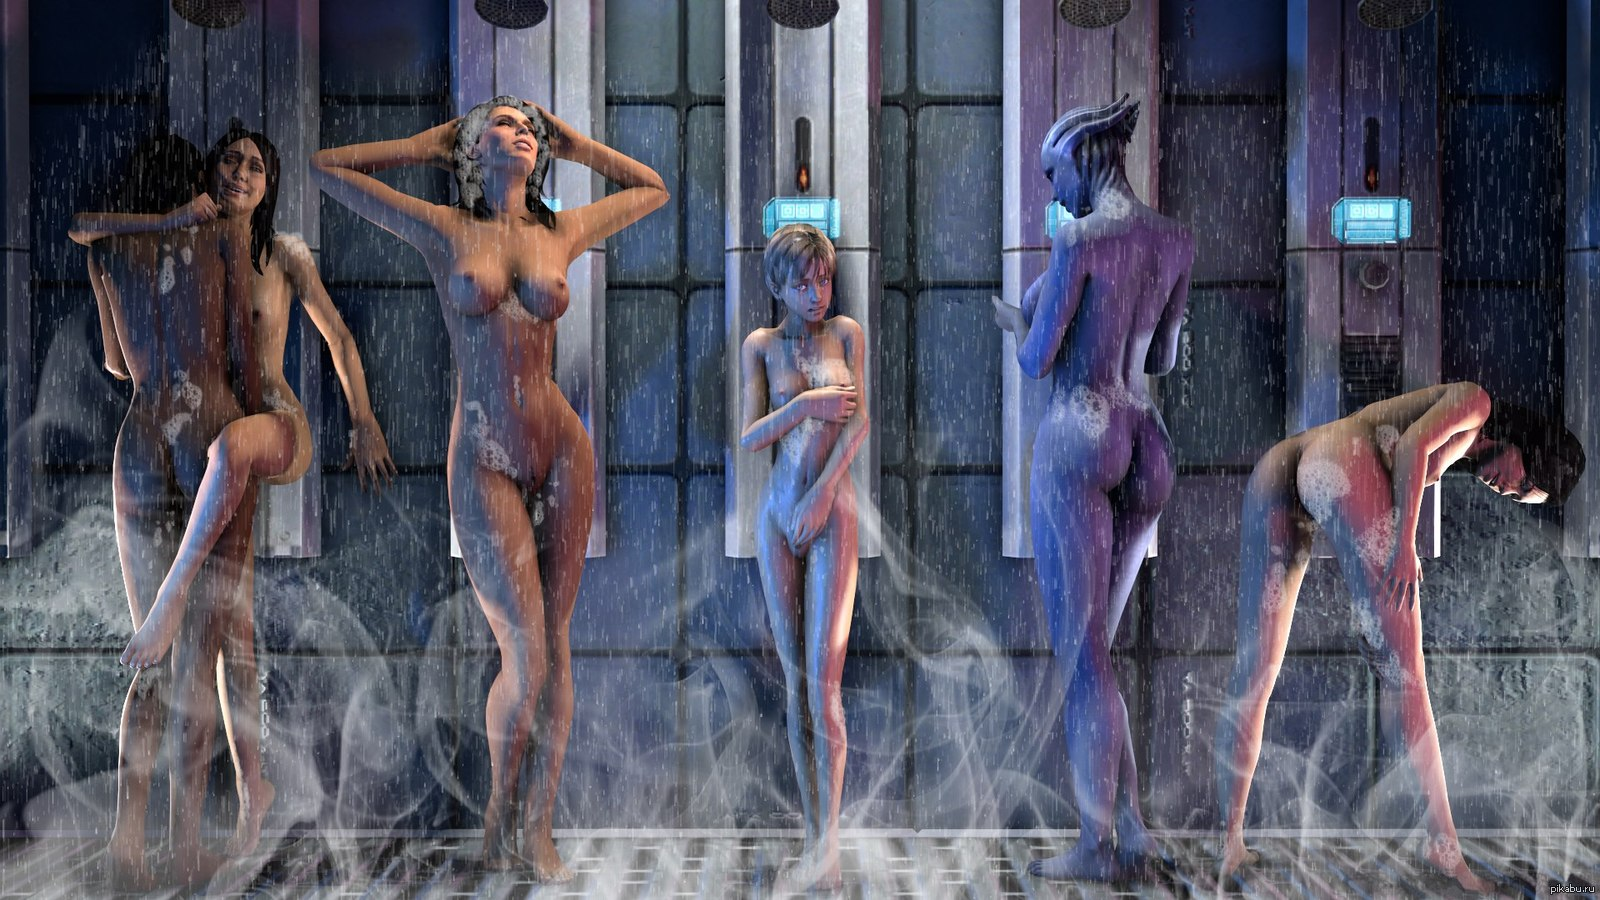 Mass effect nude game xxx toons